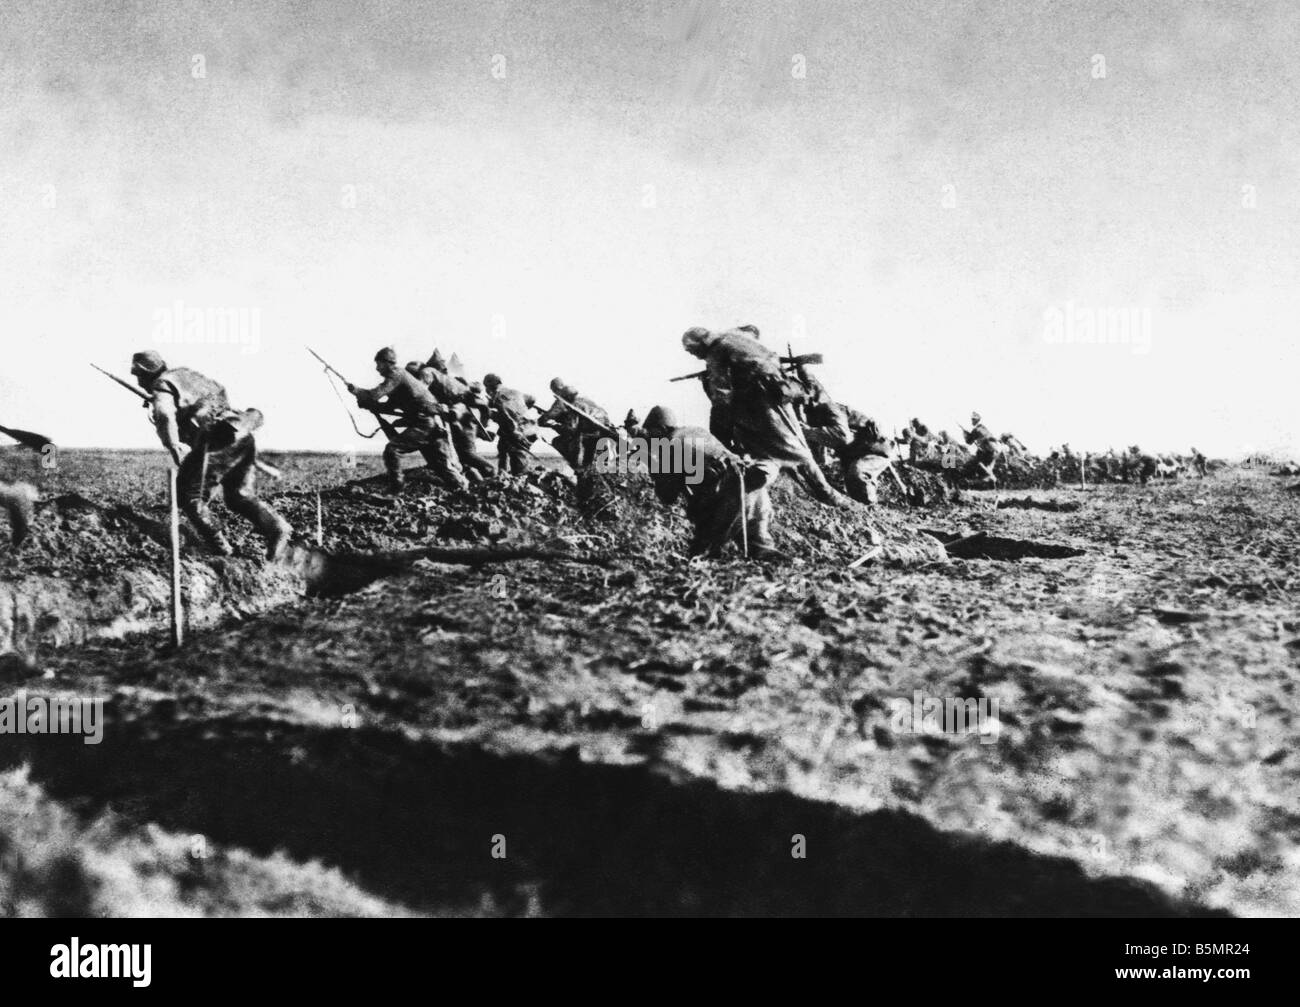 9 1917 1 0 A1 1 Turkish troops Romania WWI World War One Romania Romanian campaign August 1916 January 1917 Victory - Stock Image